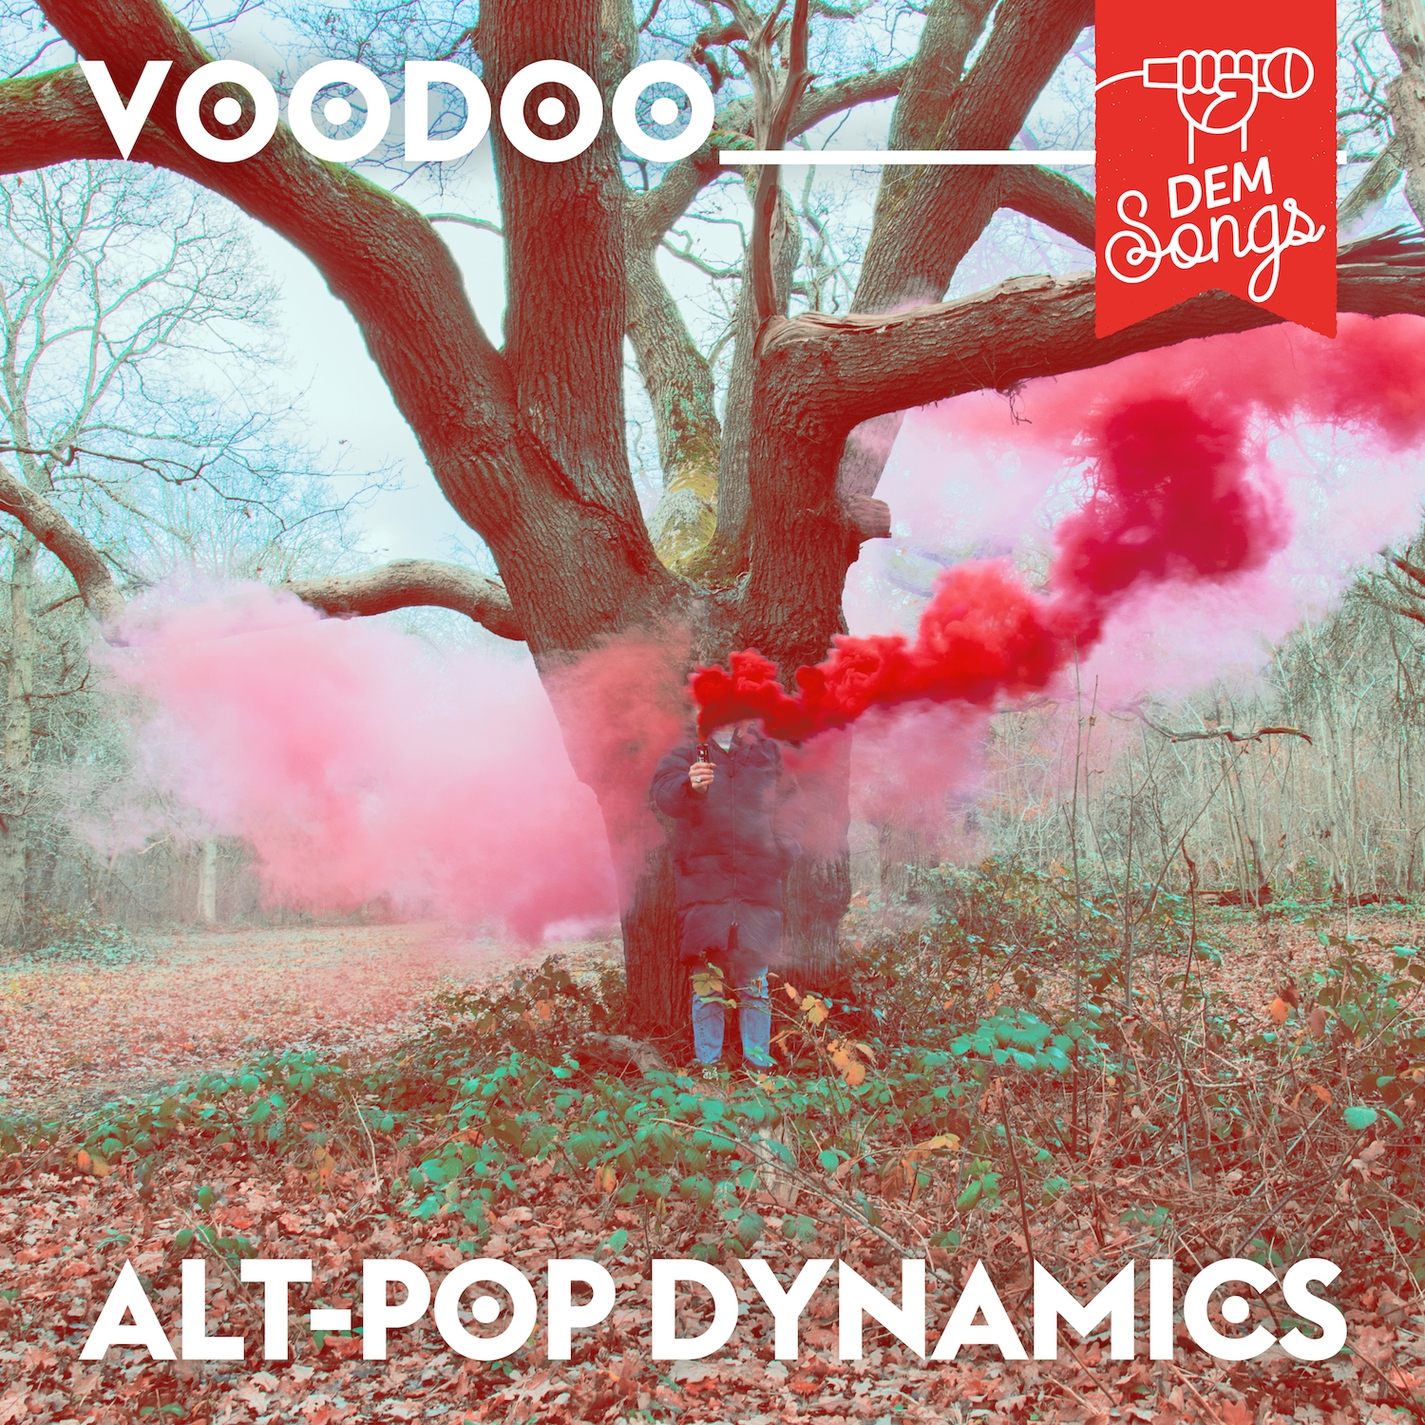 Voodoo Alt-Pop Dynamics